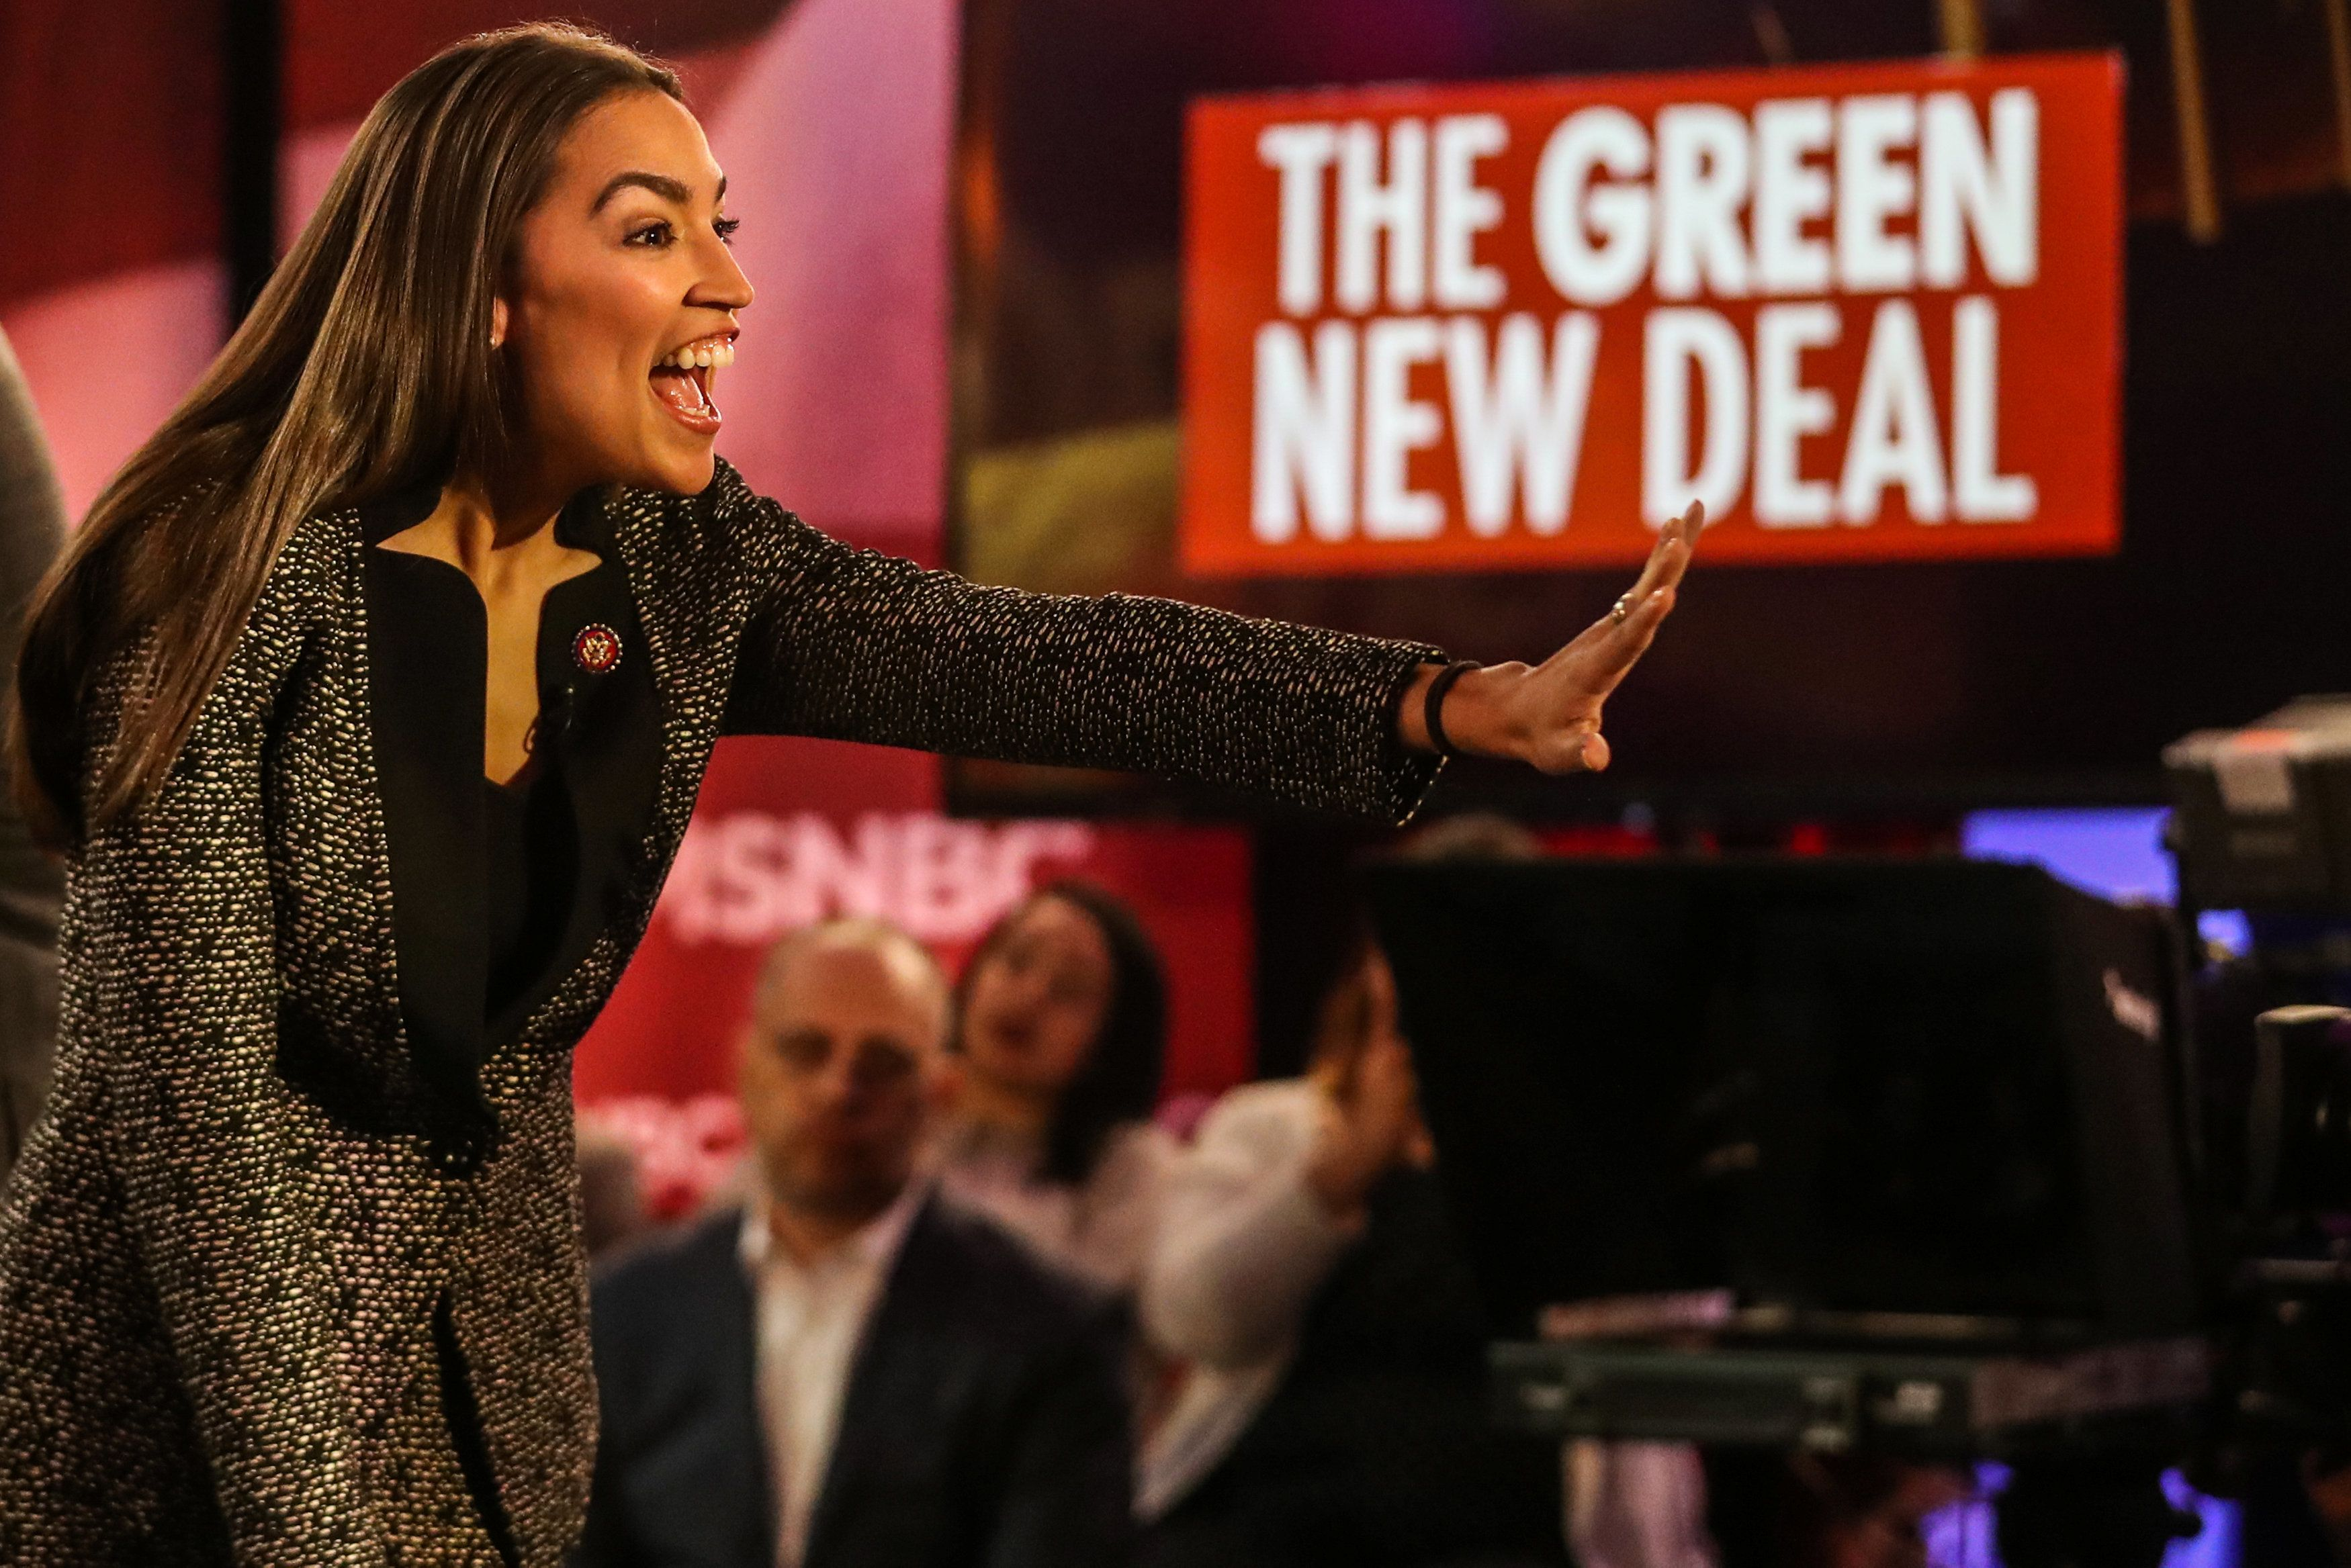 """U.S. Representative Alexandria Ocasio-Cortez (D-NY) greets audiences following a televised town hall event on the """"Green New Deal"""" in the Bronx borough of New York City, New York, U.S., March 29, 2019. REUTERS/Jeenah Moon"""